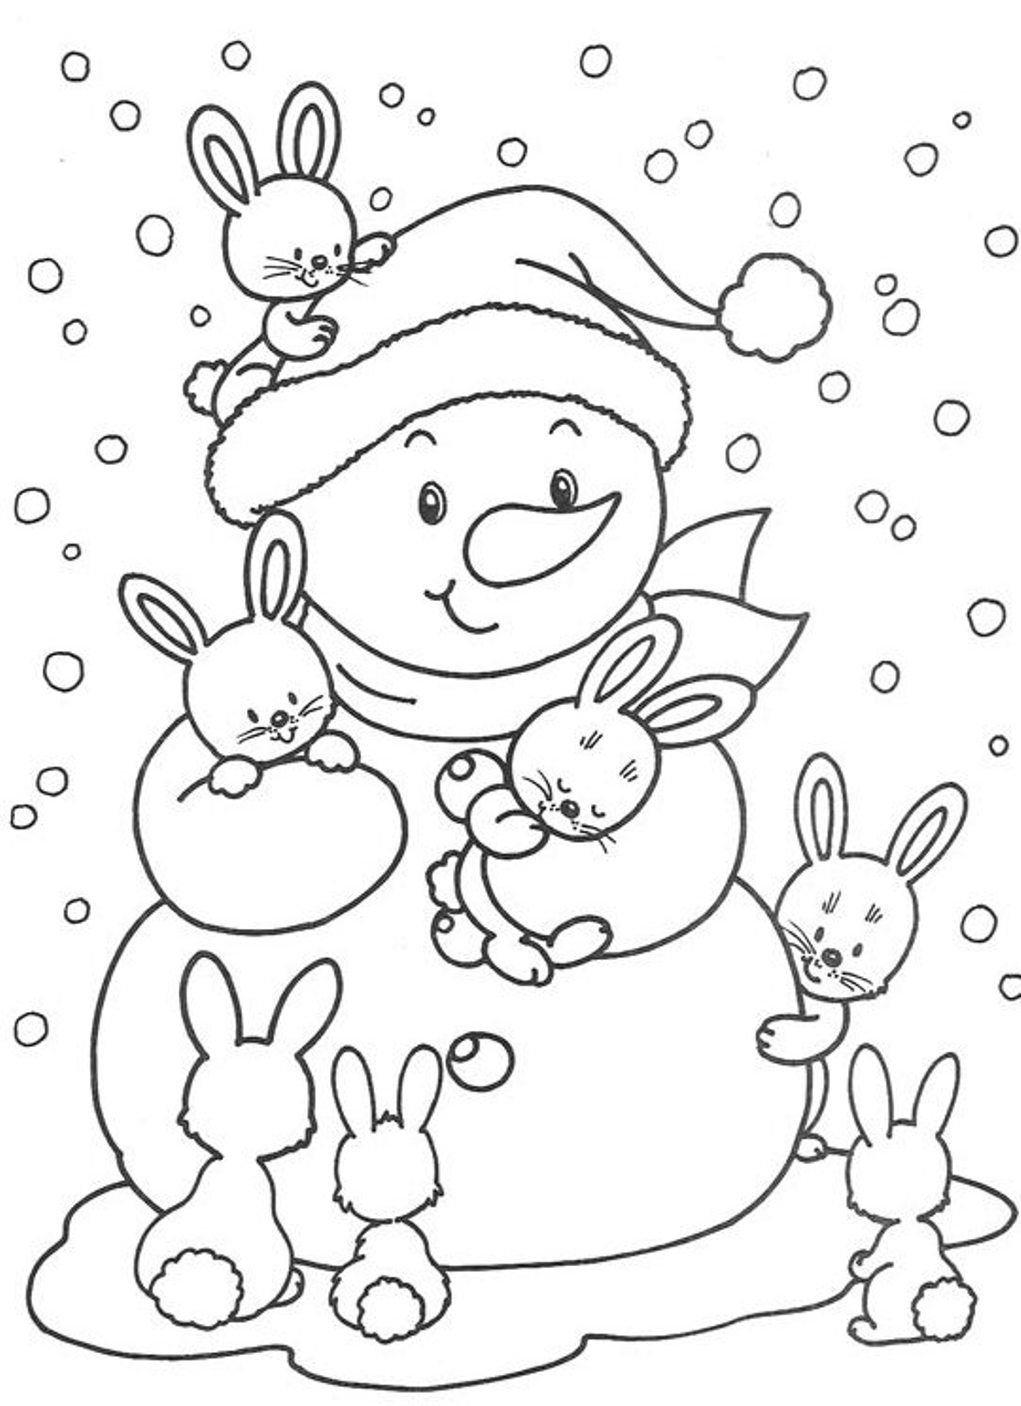 Get The Latest Free Winter Coloring Pages Images Favorite To Print Online By ONLY COLORING PAGES